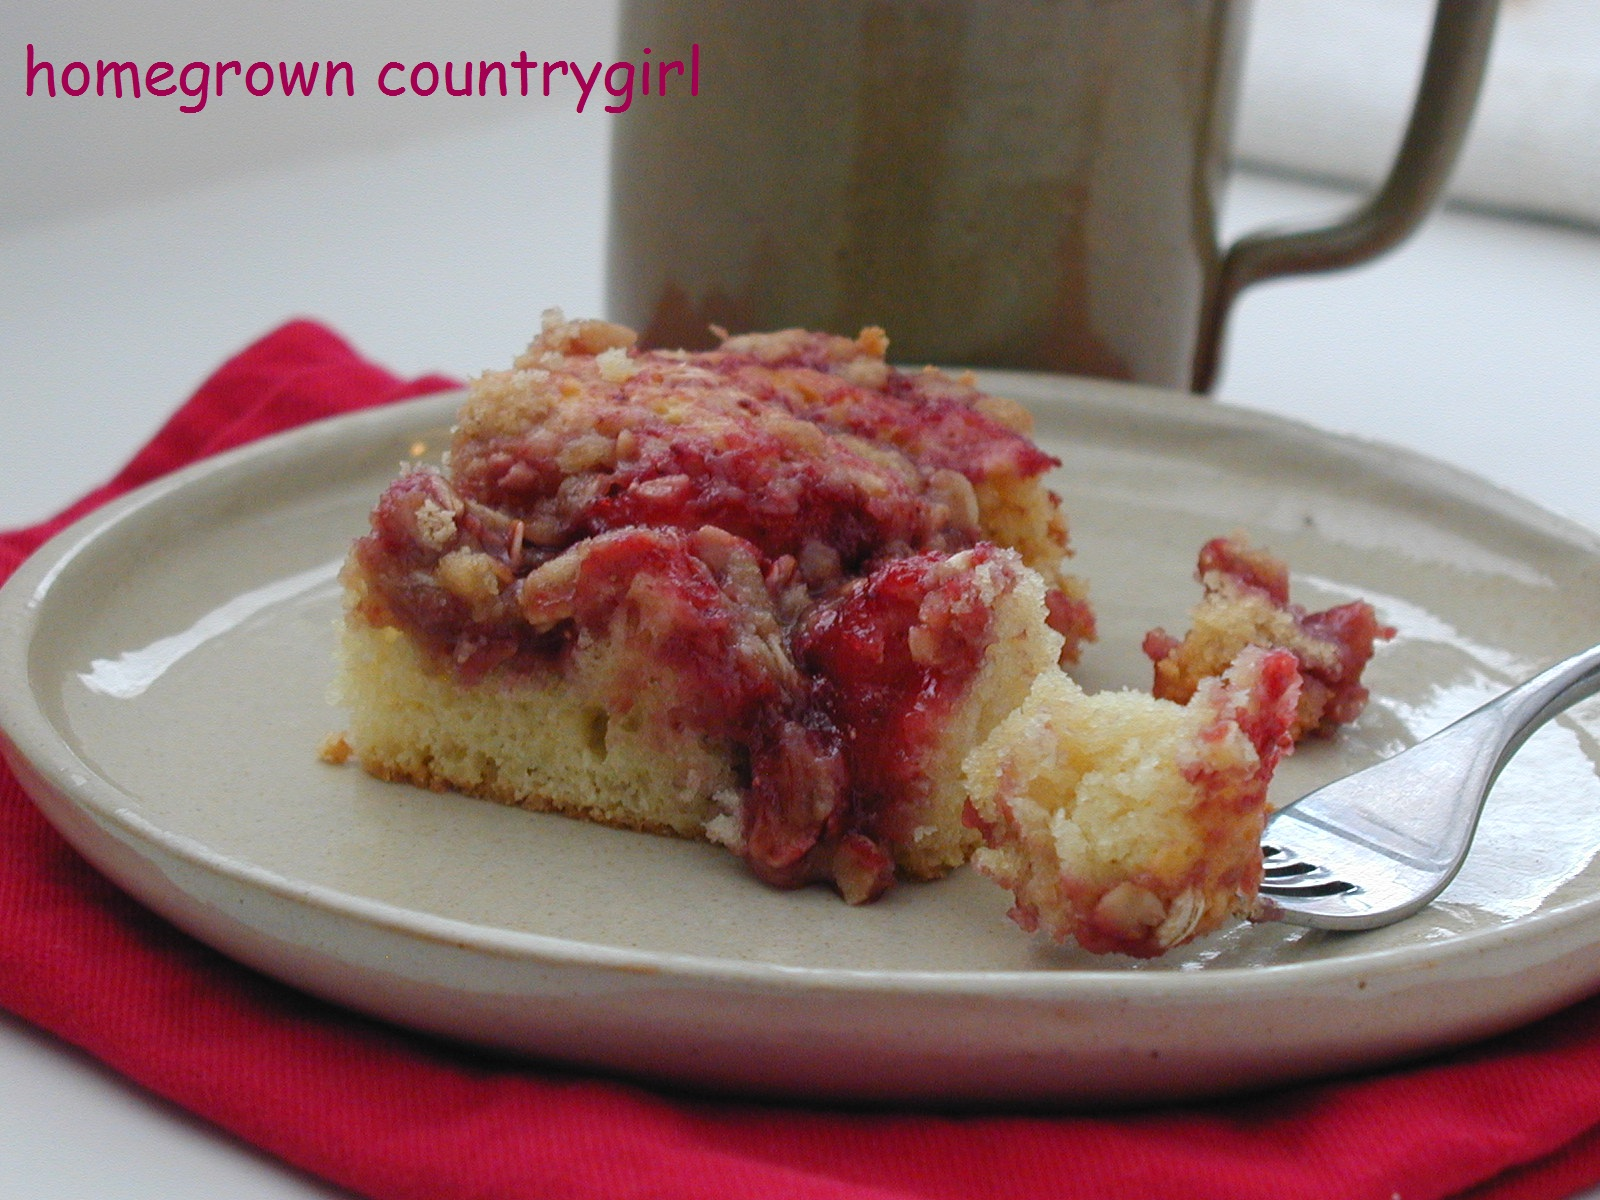 homegrown countrygirl: Strawberry Sour Cream Coffee Cake